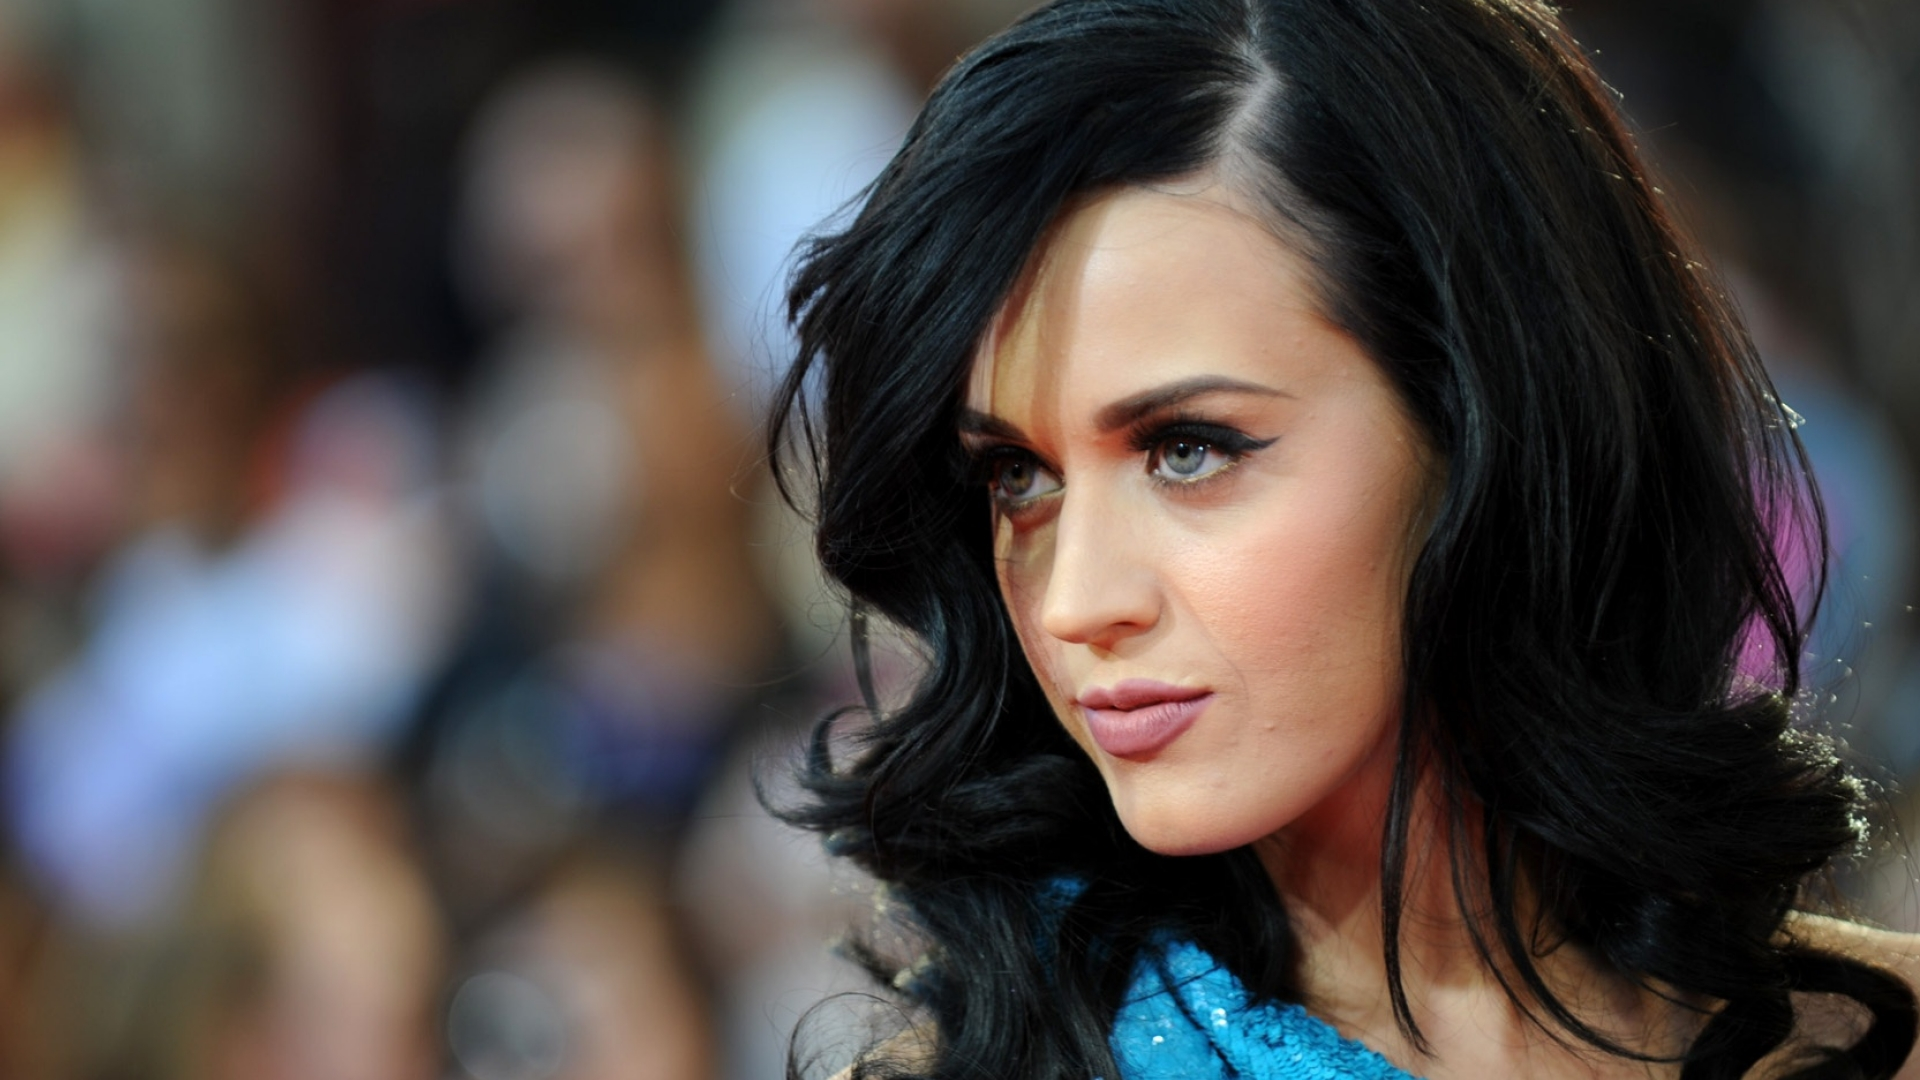 6. Katy Perry